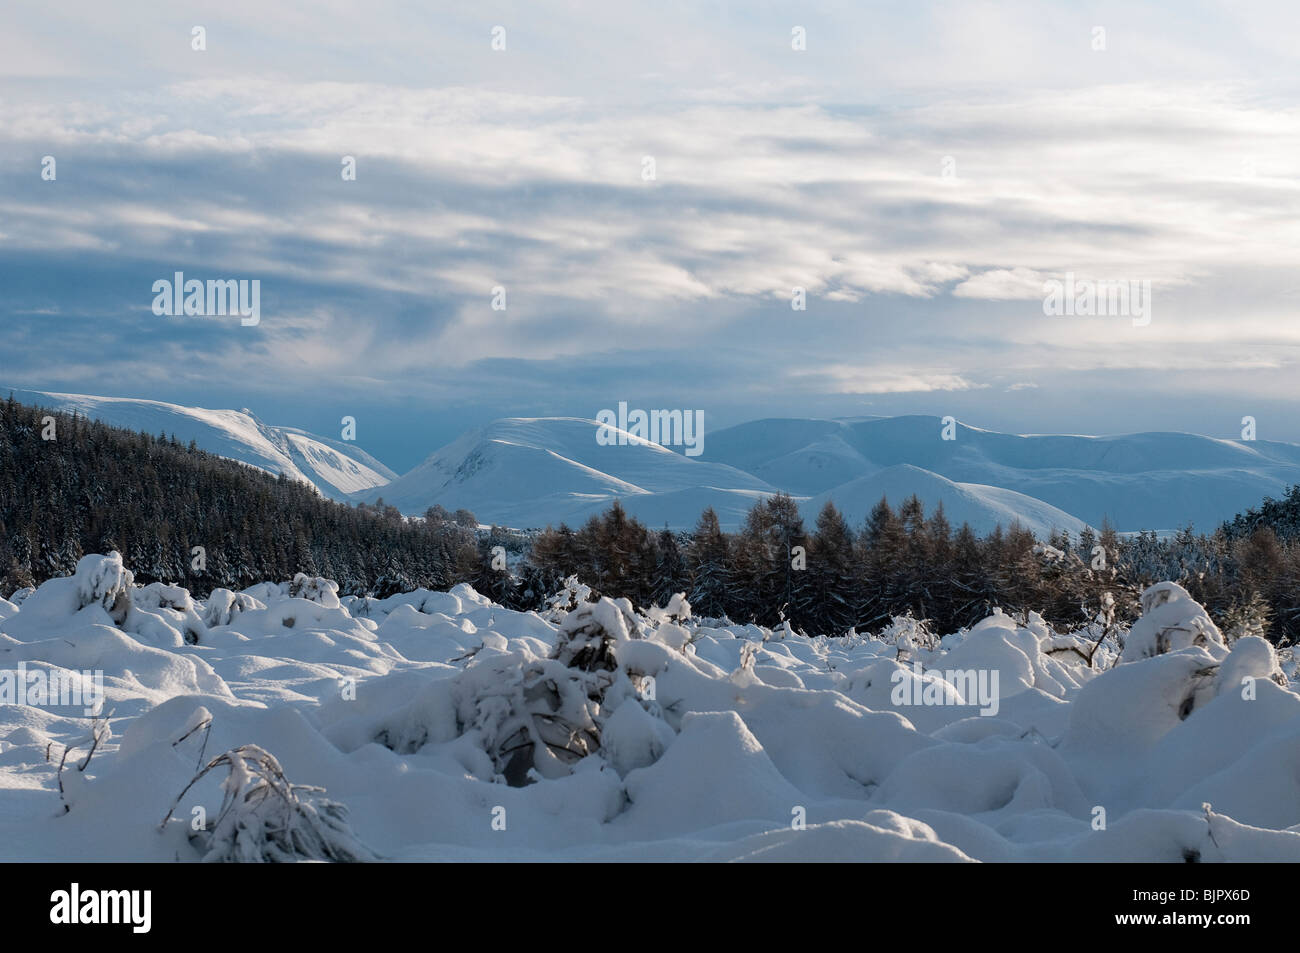 View of the snow covered Cairngorm mountains, Scotland - Stock Image